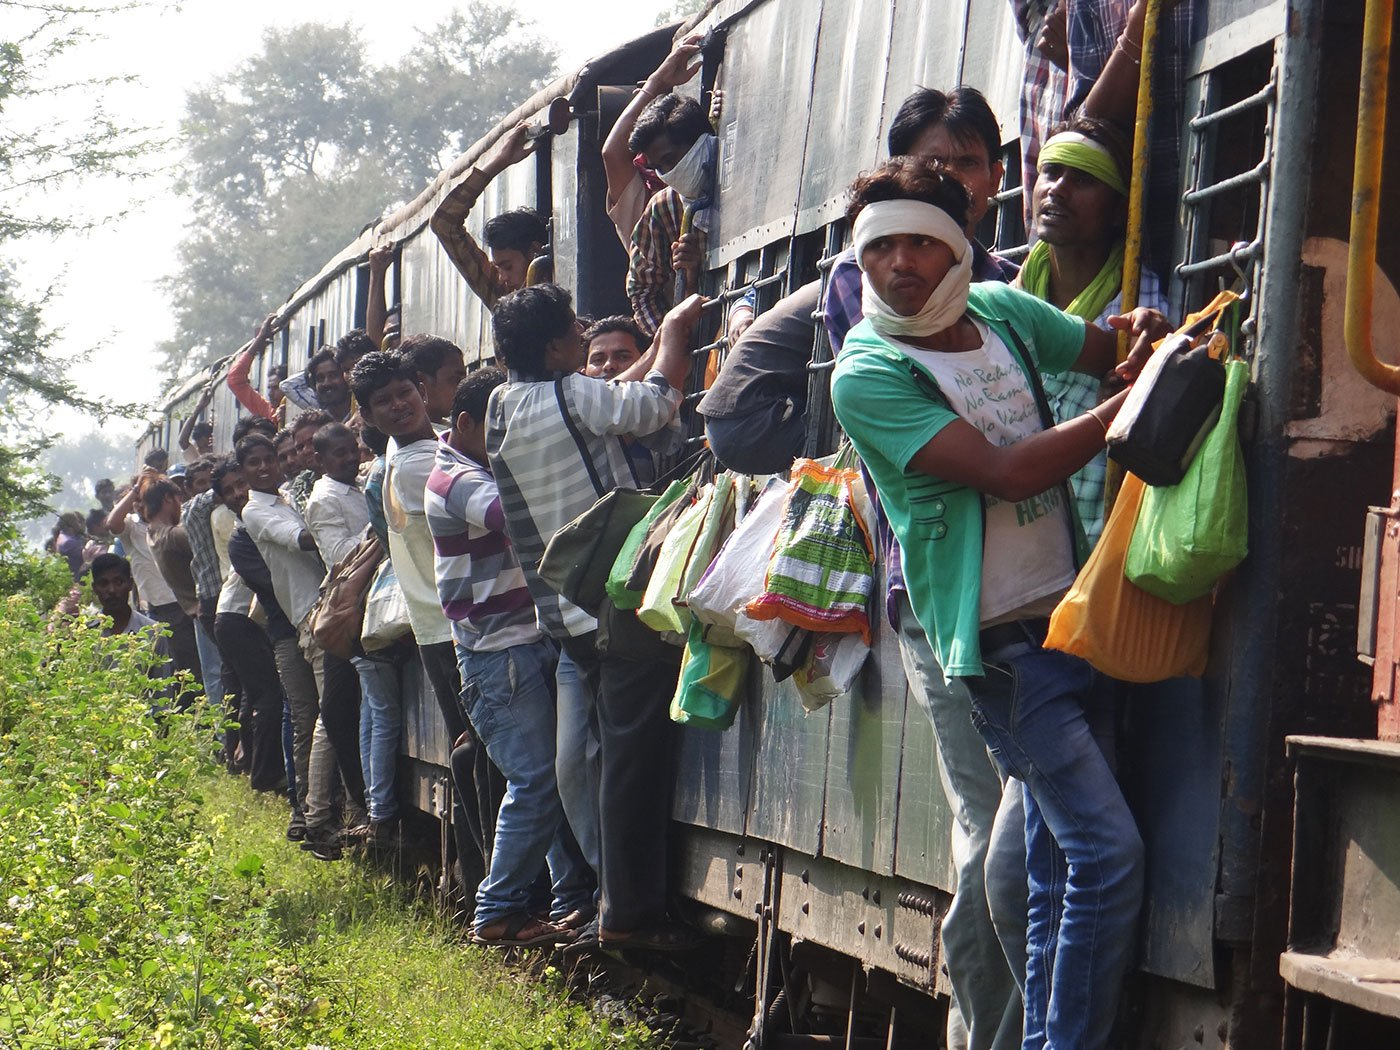 'Usually there is no space in the bogie and people hang outside the doors', says Pradeep Sahu